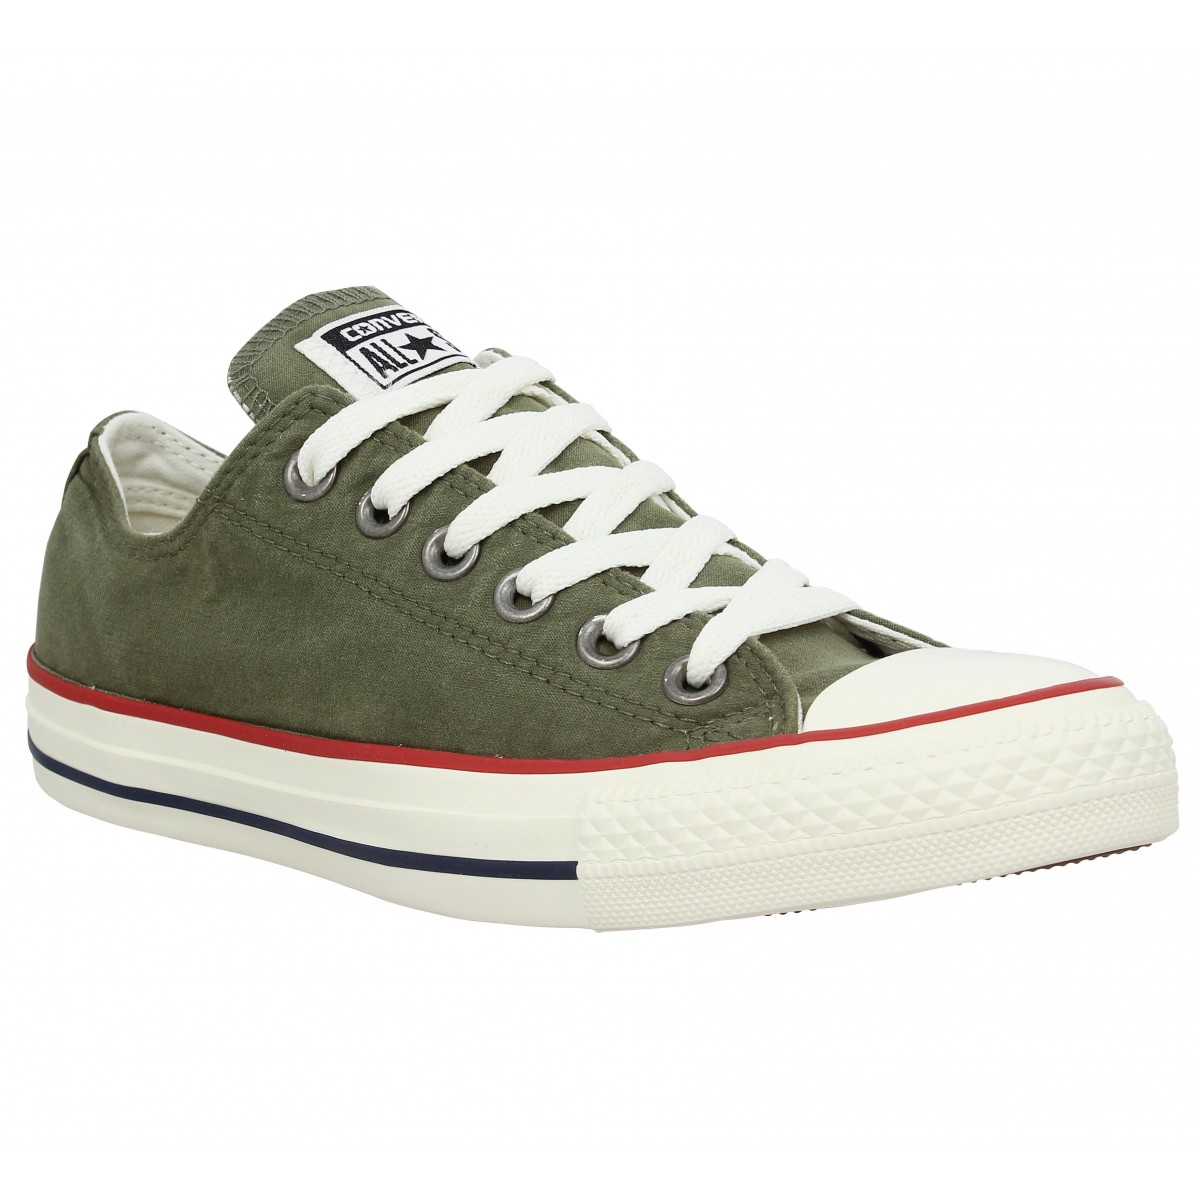 Baskets CONVERSE Chuck Taylor All Star toile Femme Olive